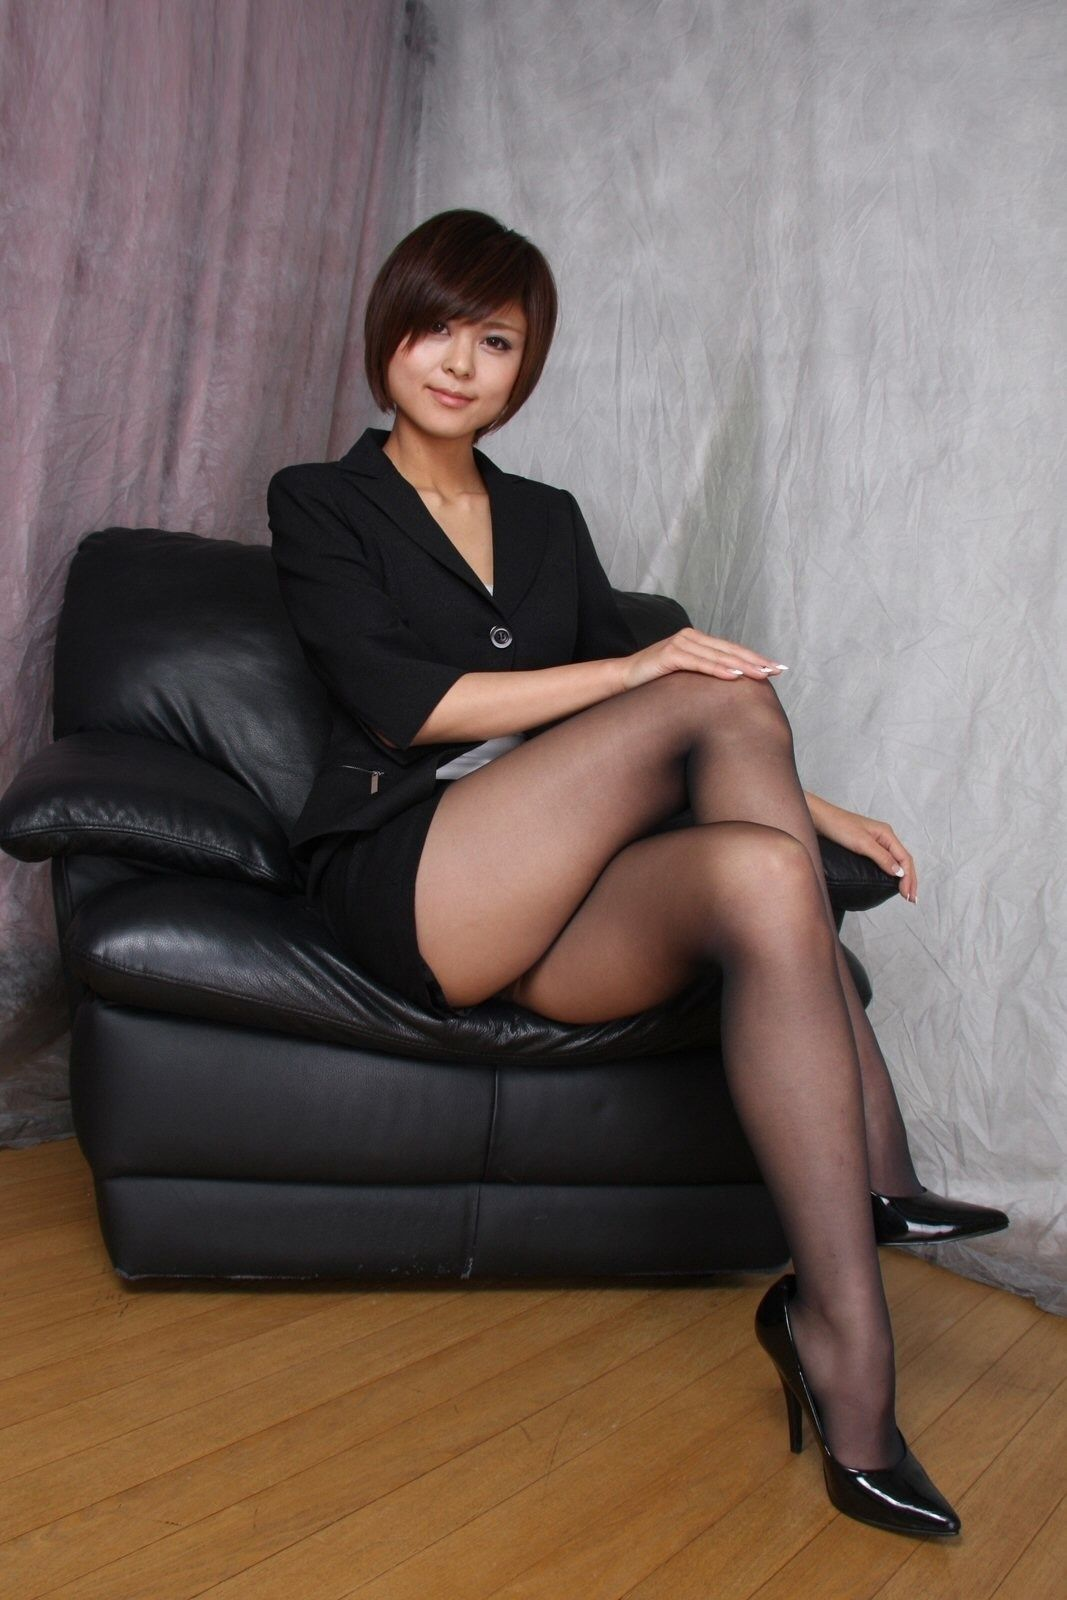 Legs in pantyhose